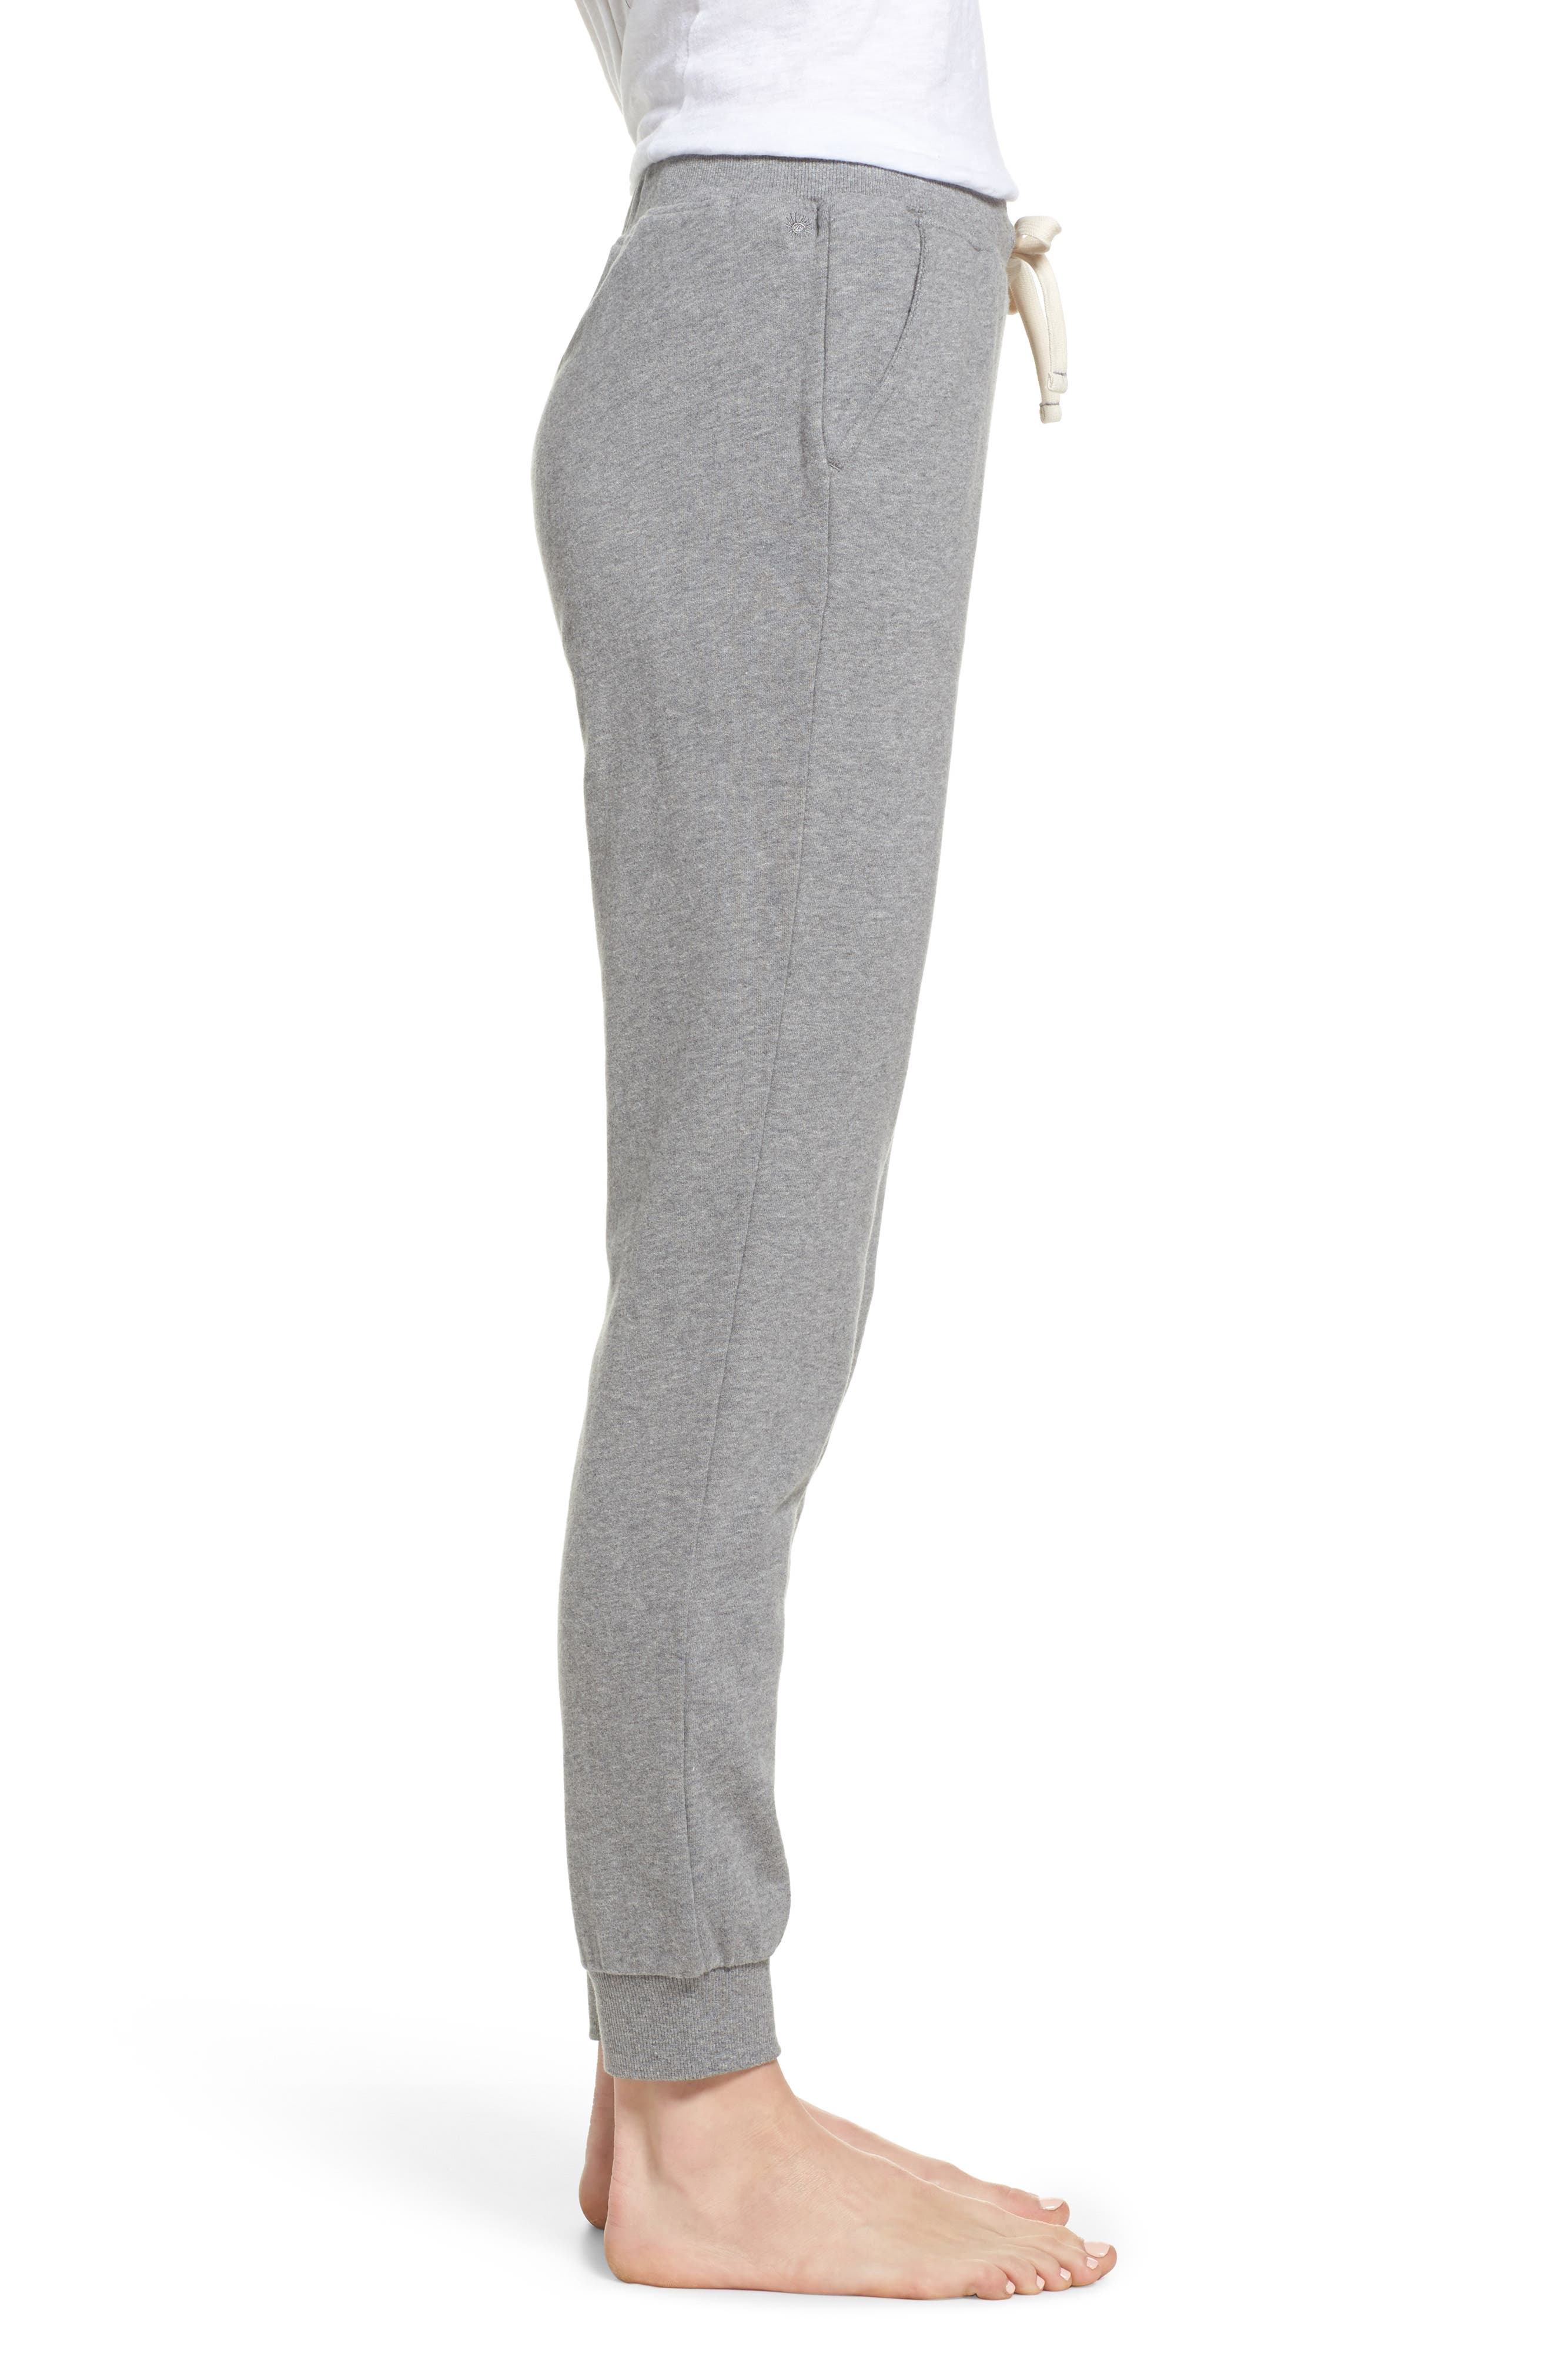 Babe Jogger Pants,                             Alternate thumbnail 3, color,                             Heather Grey